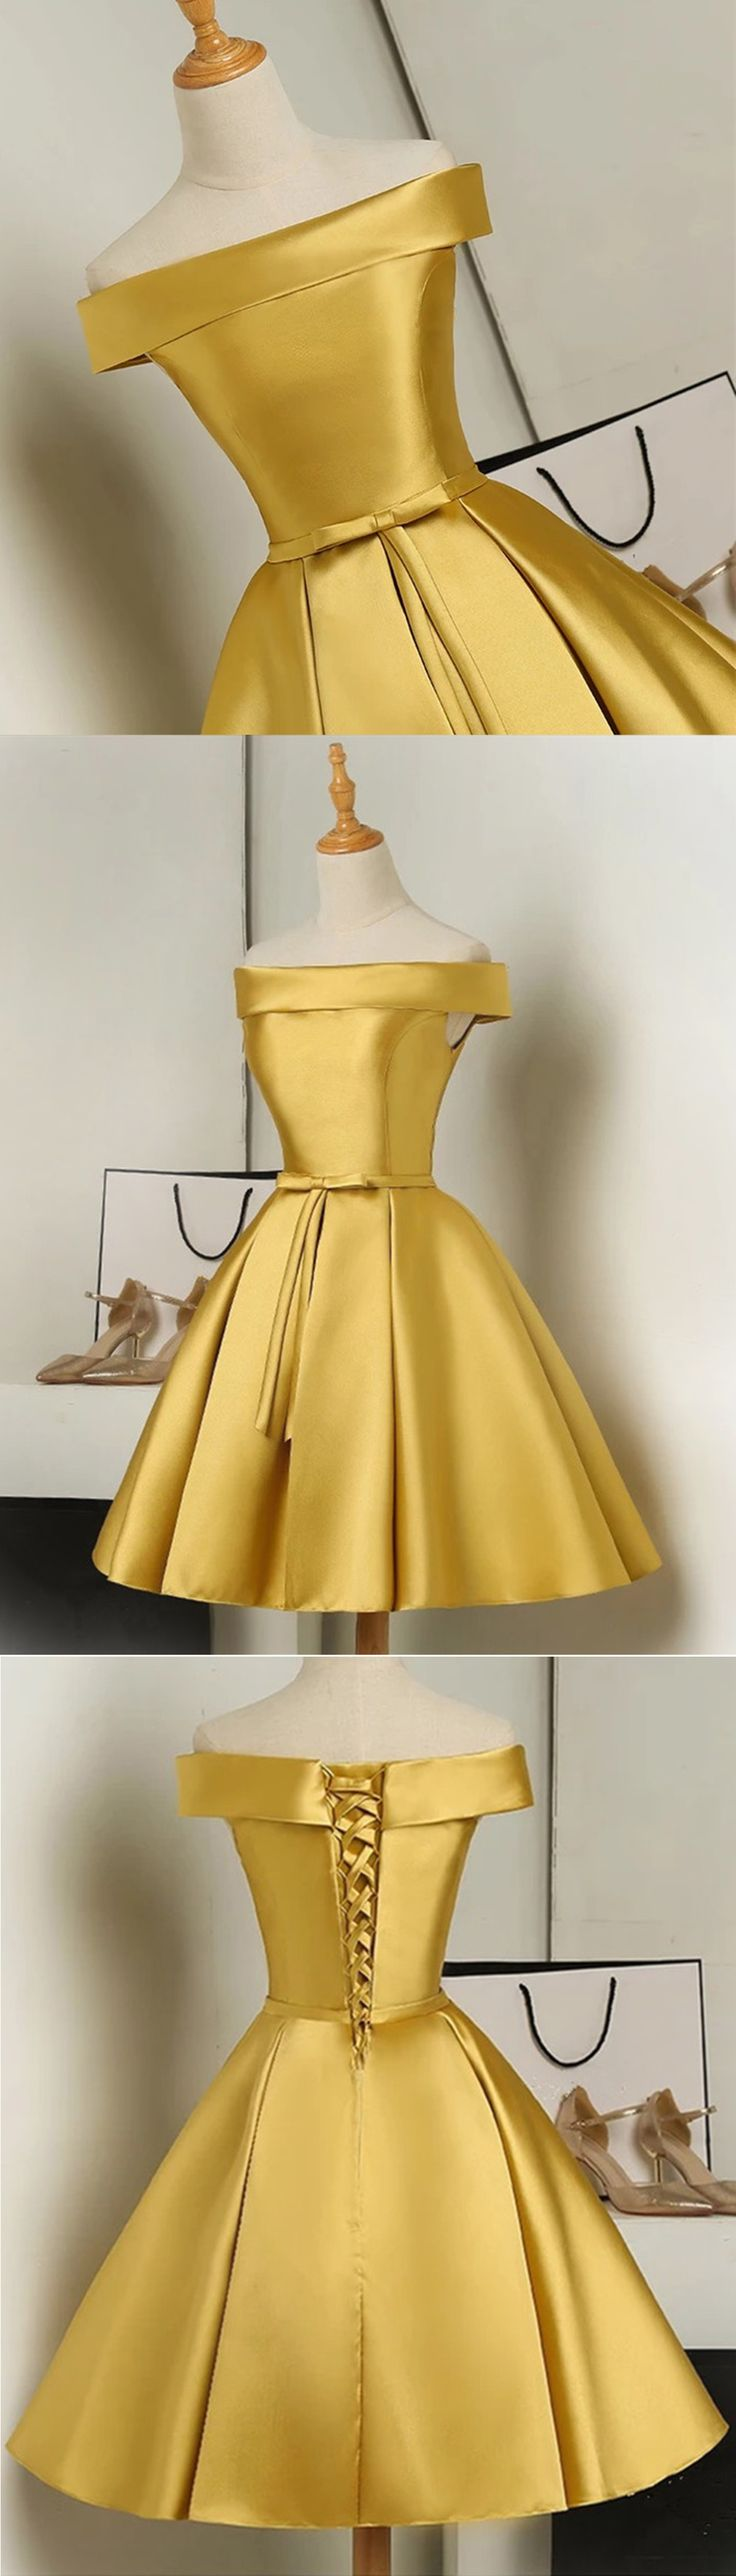 Golden satin short lace up strapless party dress with bowknot